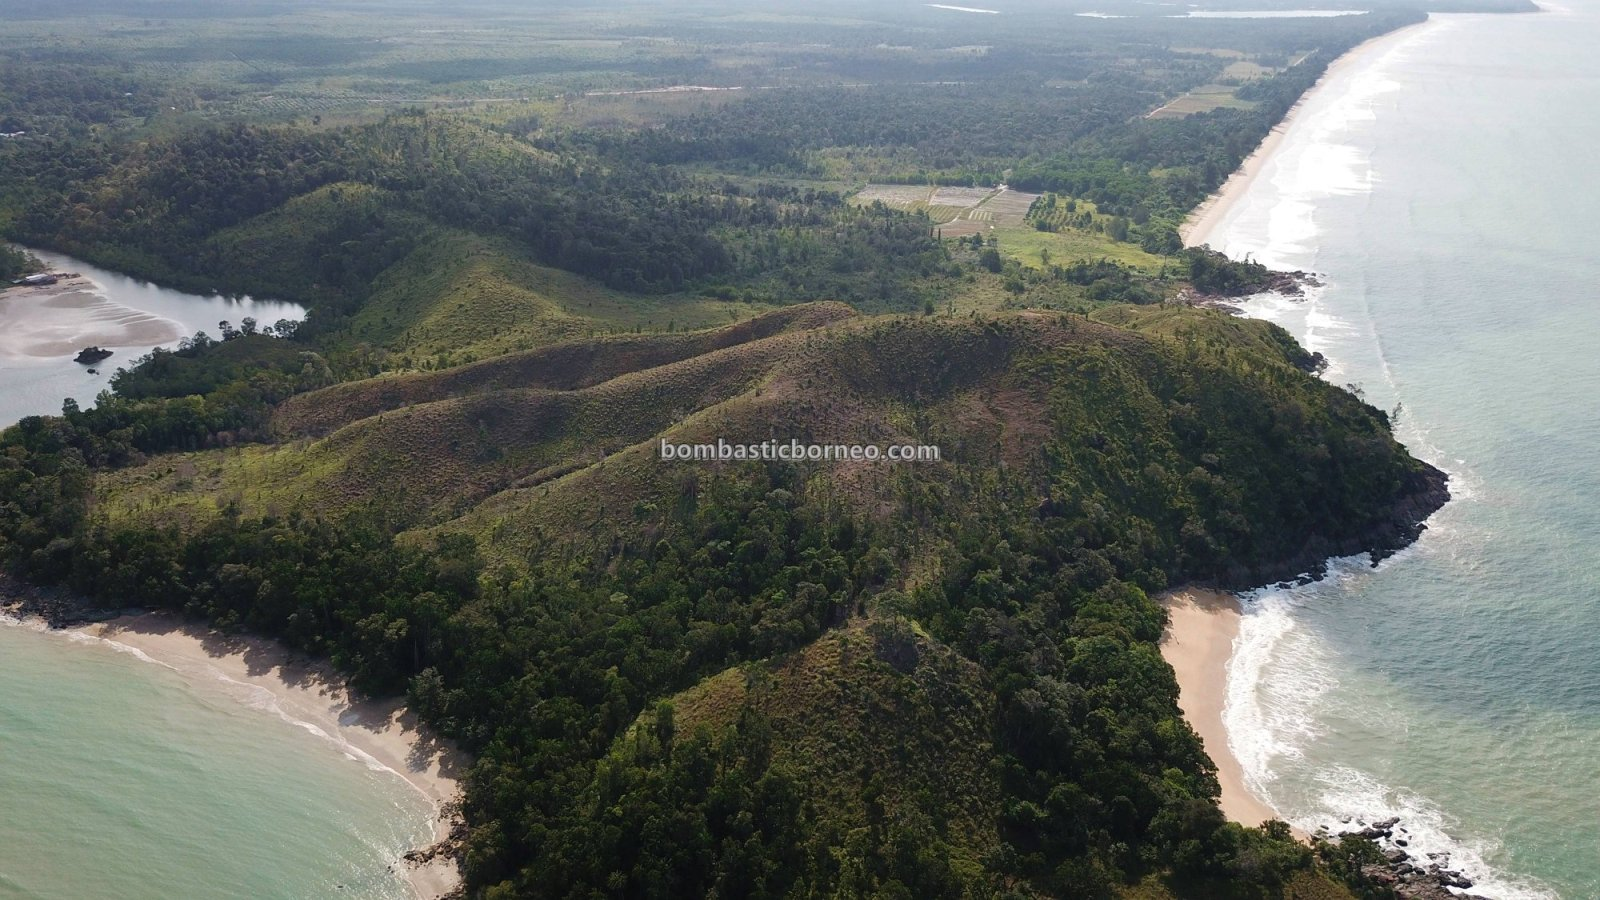 Bukit Gondol, Kampung, Beach, nature, backpackers, exploration, family vacation, Borneo, Kuching, Sematan, Tourism, tourist attraction, crossborder, 砂拉越海滩, 马来西亚旅游